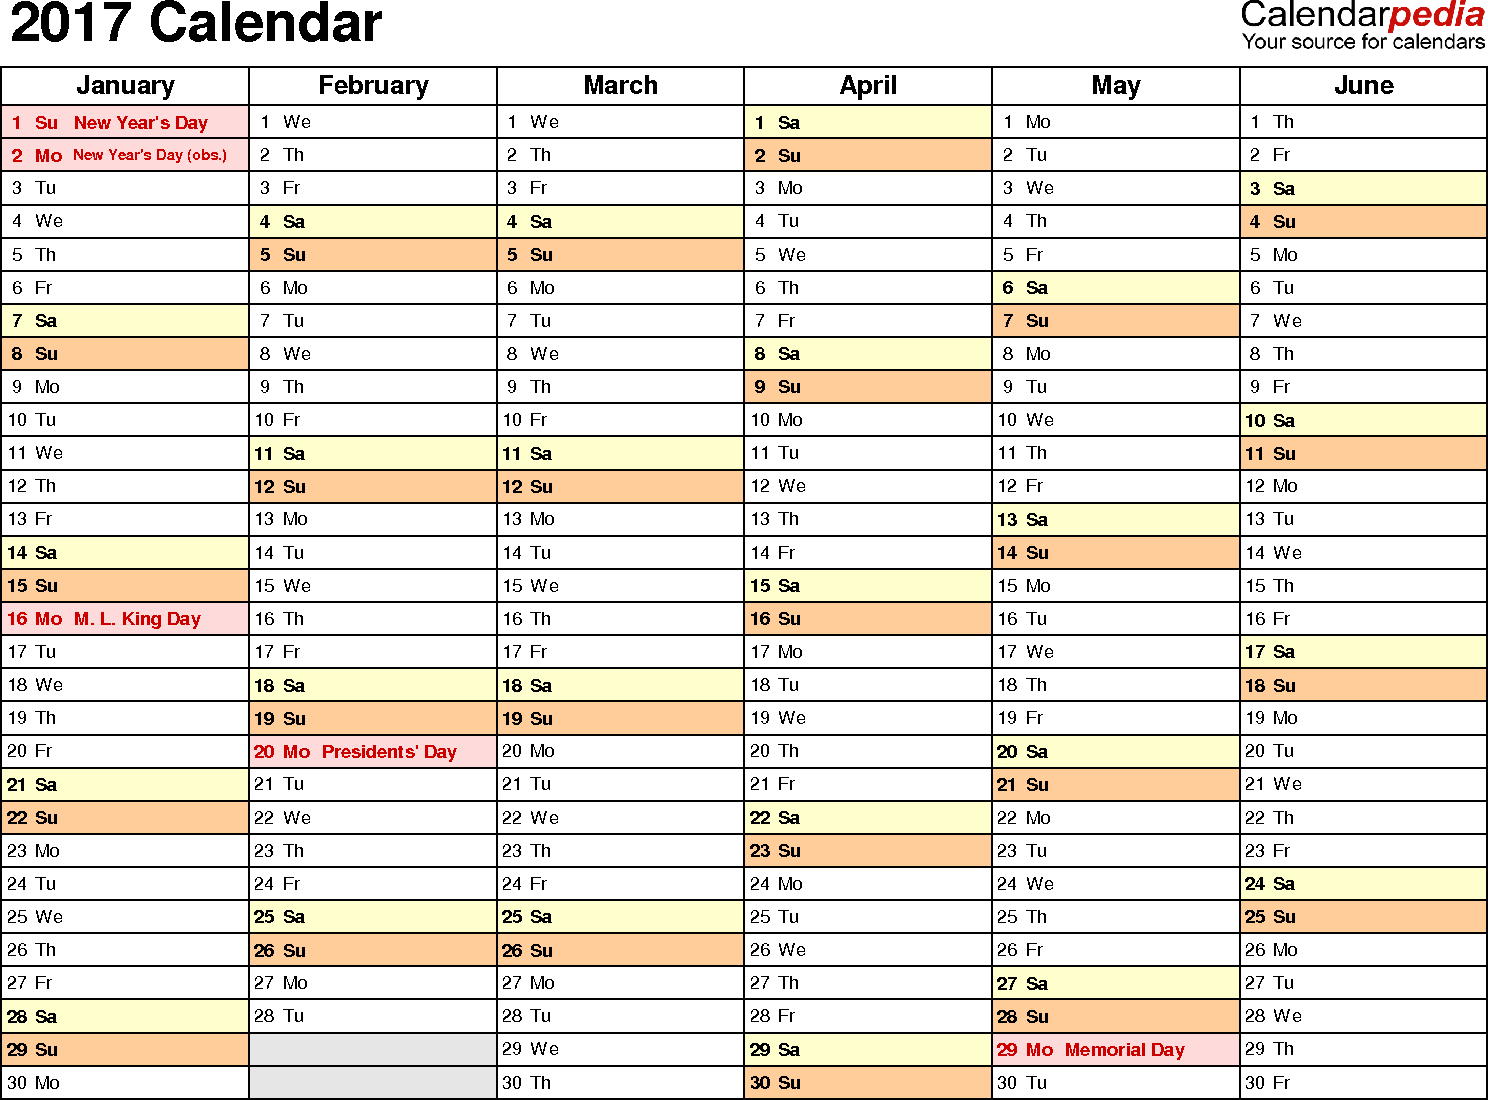 Ediblewildsus  Fascinating  Calendar  Download  Free Printable Excel Templates Xls With Extraordinary Template   Calendar For Excel Months Horizontally  Pages Landscape Orientation With Astonishing Excel Home Inspections Also How To Calculate Chi Square In Excel In Addition Excel Macro Open File And Excel Map Add In As Well As Import Csv File Into Excel Additionally Bar And Line Graph Excel From Calendarpediacom With Ediblewildsus  Extraordinary  Calendar  Download  Free Printable Excel Templates Xls With Astonishing Template   Calendar For Excel Months Horizontally  Pages Landscape Orientation And Fascinating Excel Home Inspections Also How To Calculate Chi Square In Excel In Addition Excel Macro Open File From Calendarpediacom